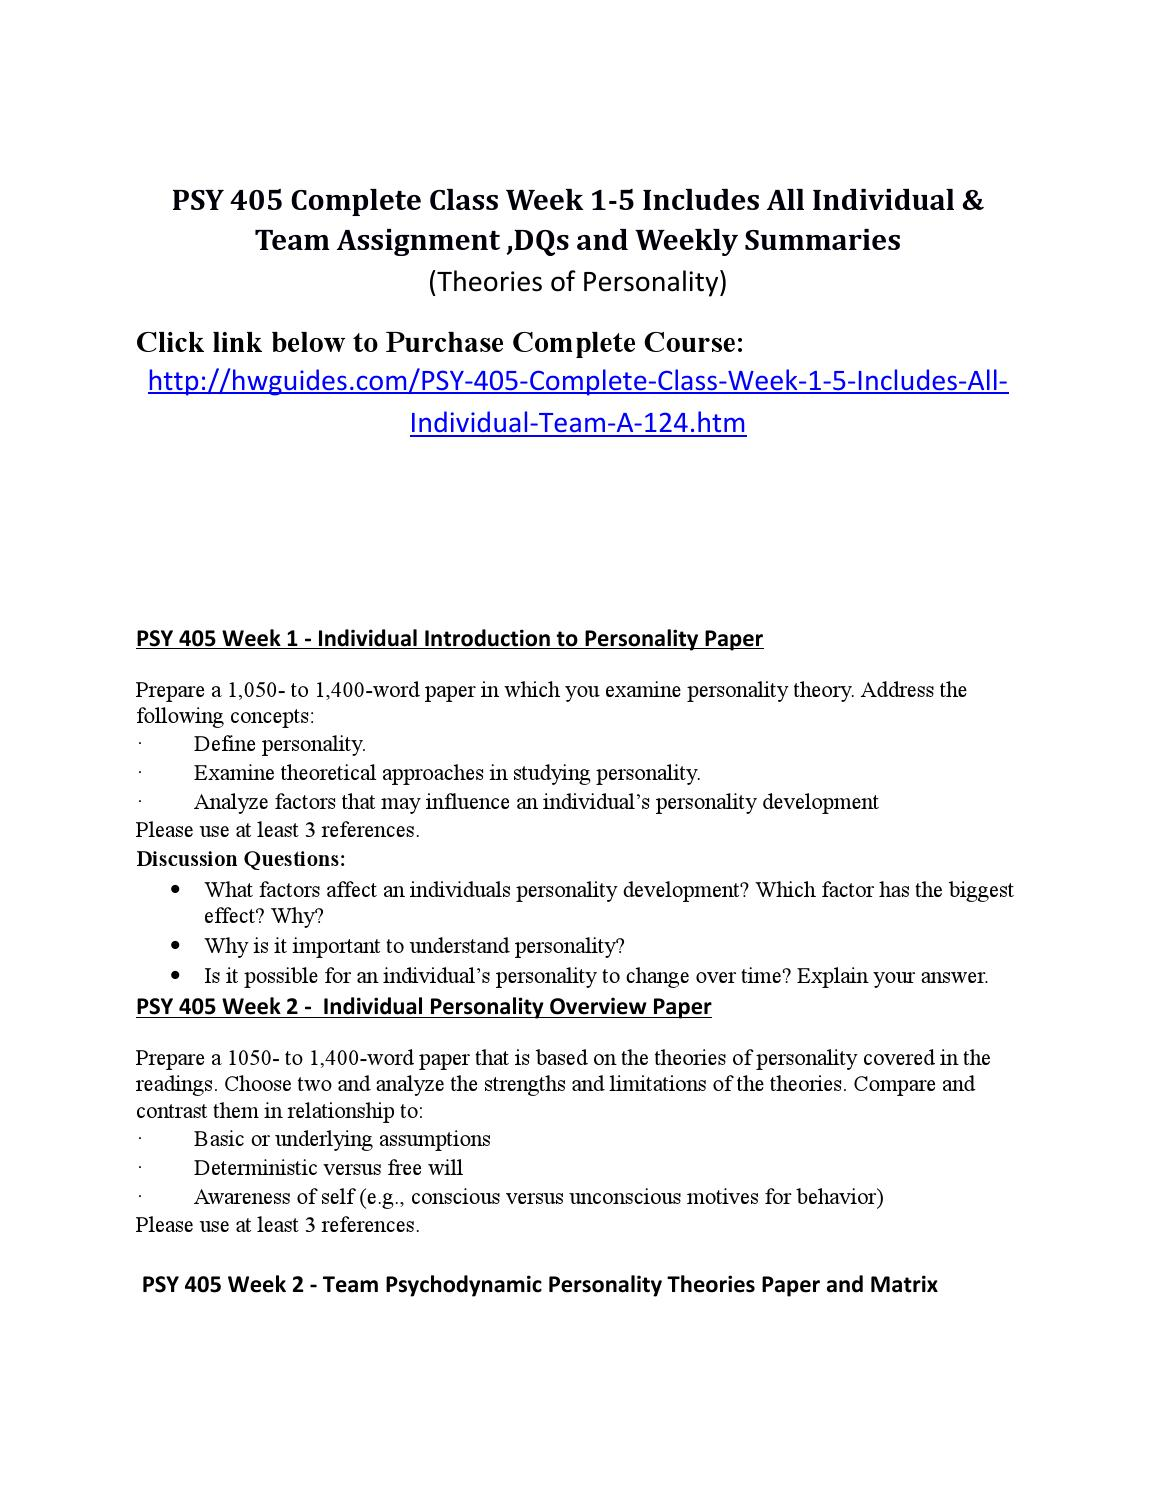 psy 270 week 5 discussion questions answers Psy 110 entire course  $3499  including the textbook, videos, and classroom discussion answer the questions in the  psy 110 week 5 building networks each week you've been learning important tools and strategies to keep you moving forward and juggling life, in general.